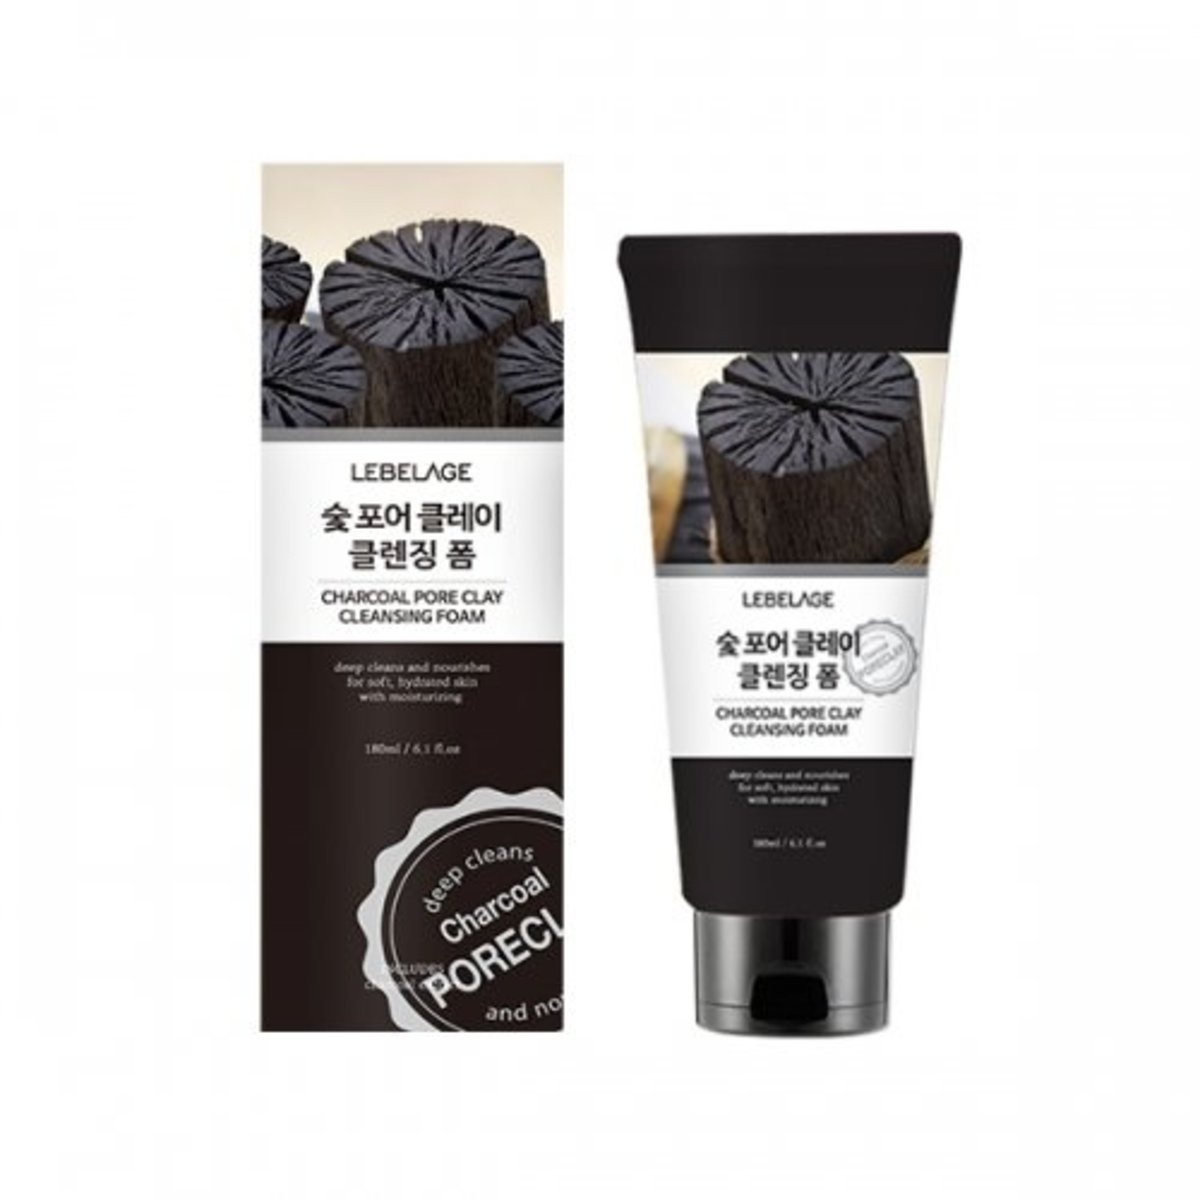 Charcoal Pore Clay CLeansing Foam 180ml